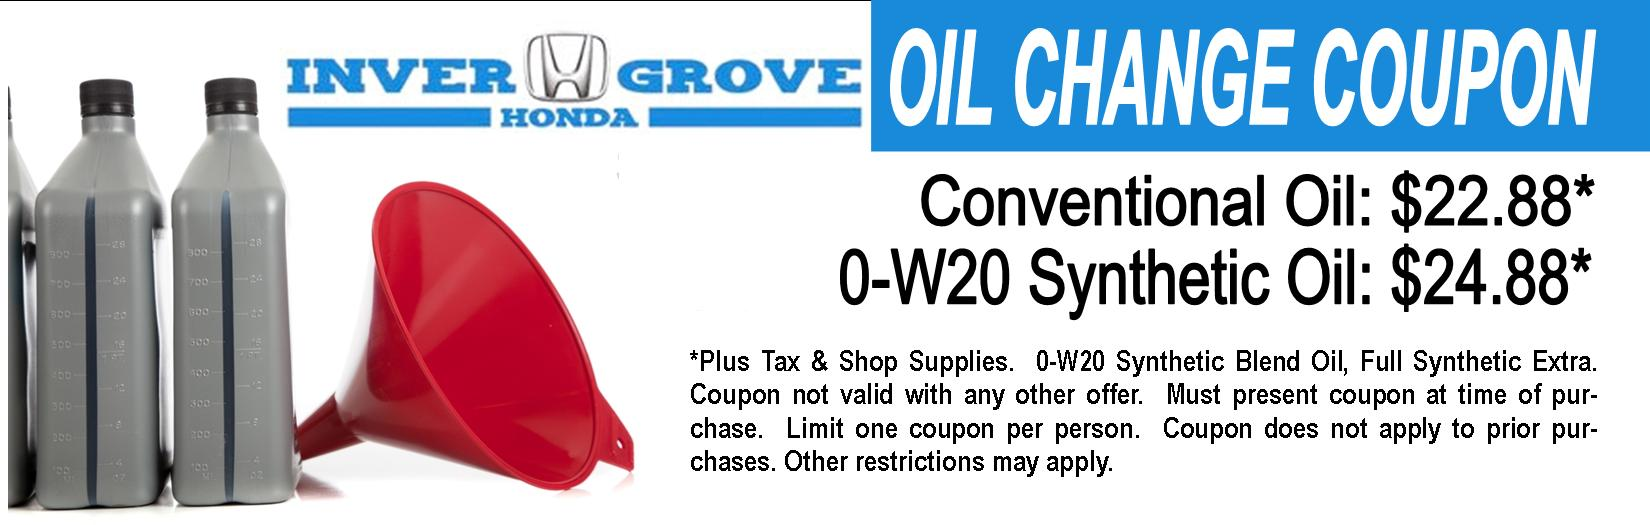 Inver grove honda service special coupons don 39 t miss out for Honda a1 service coupon